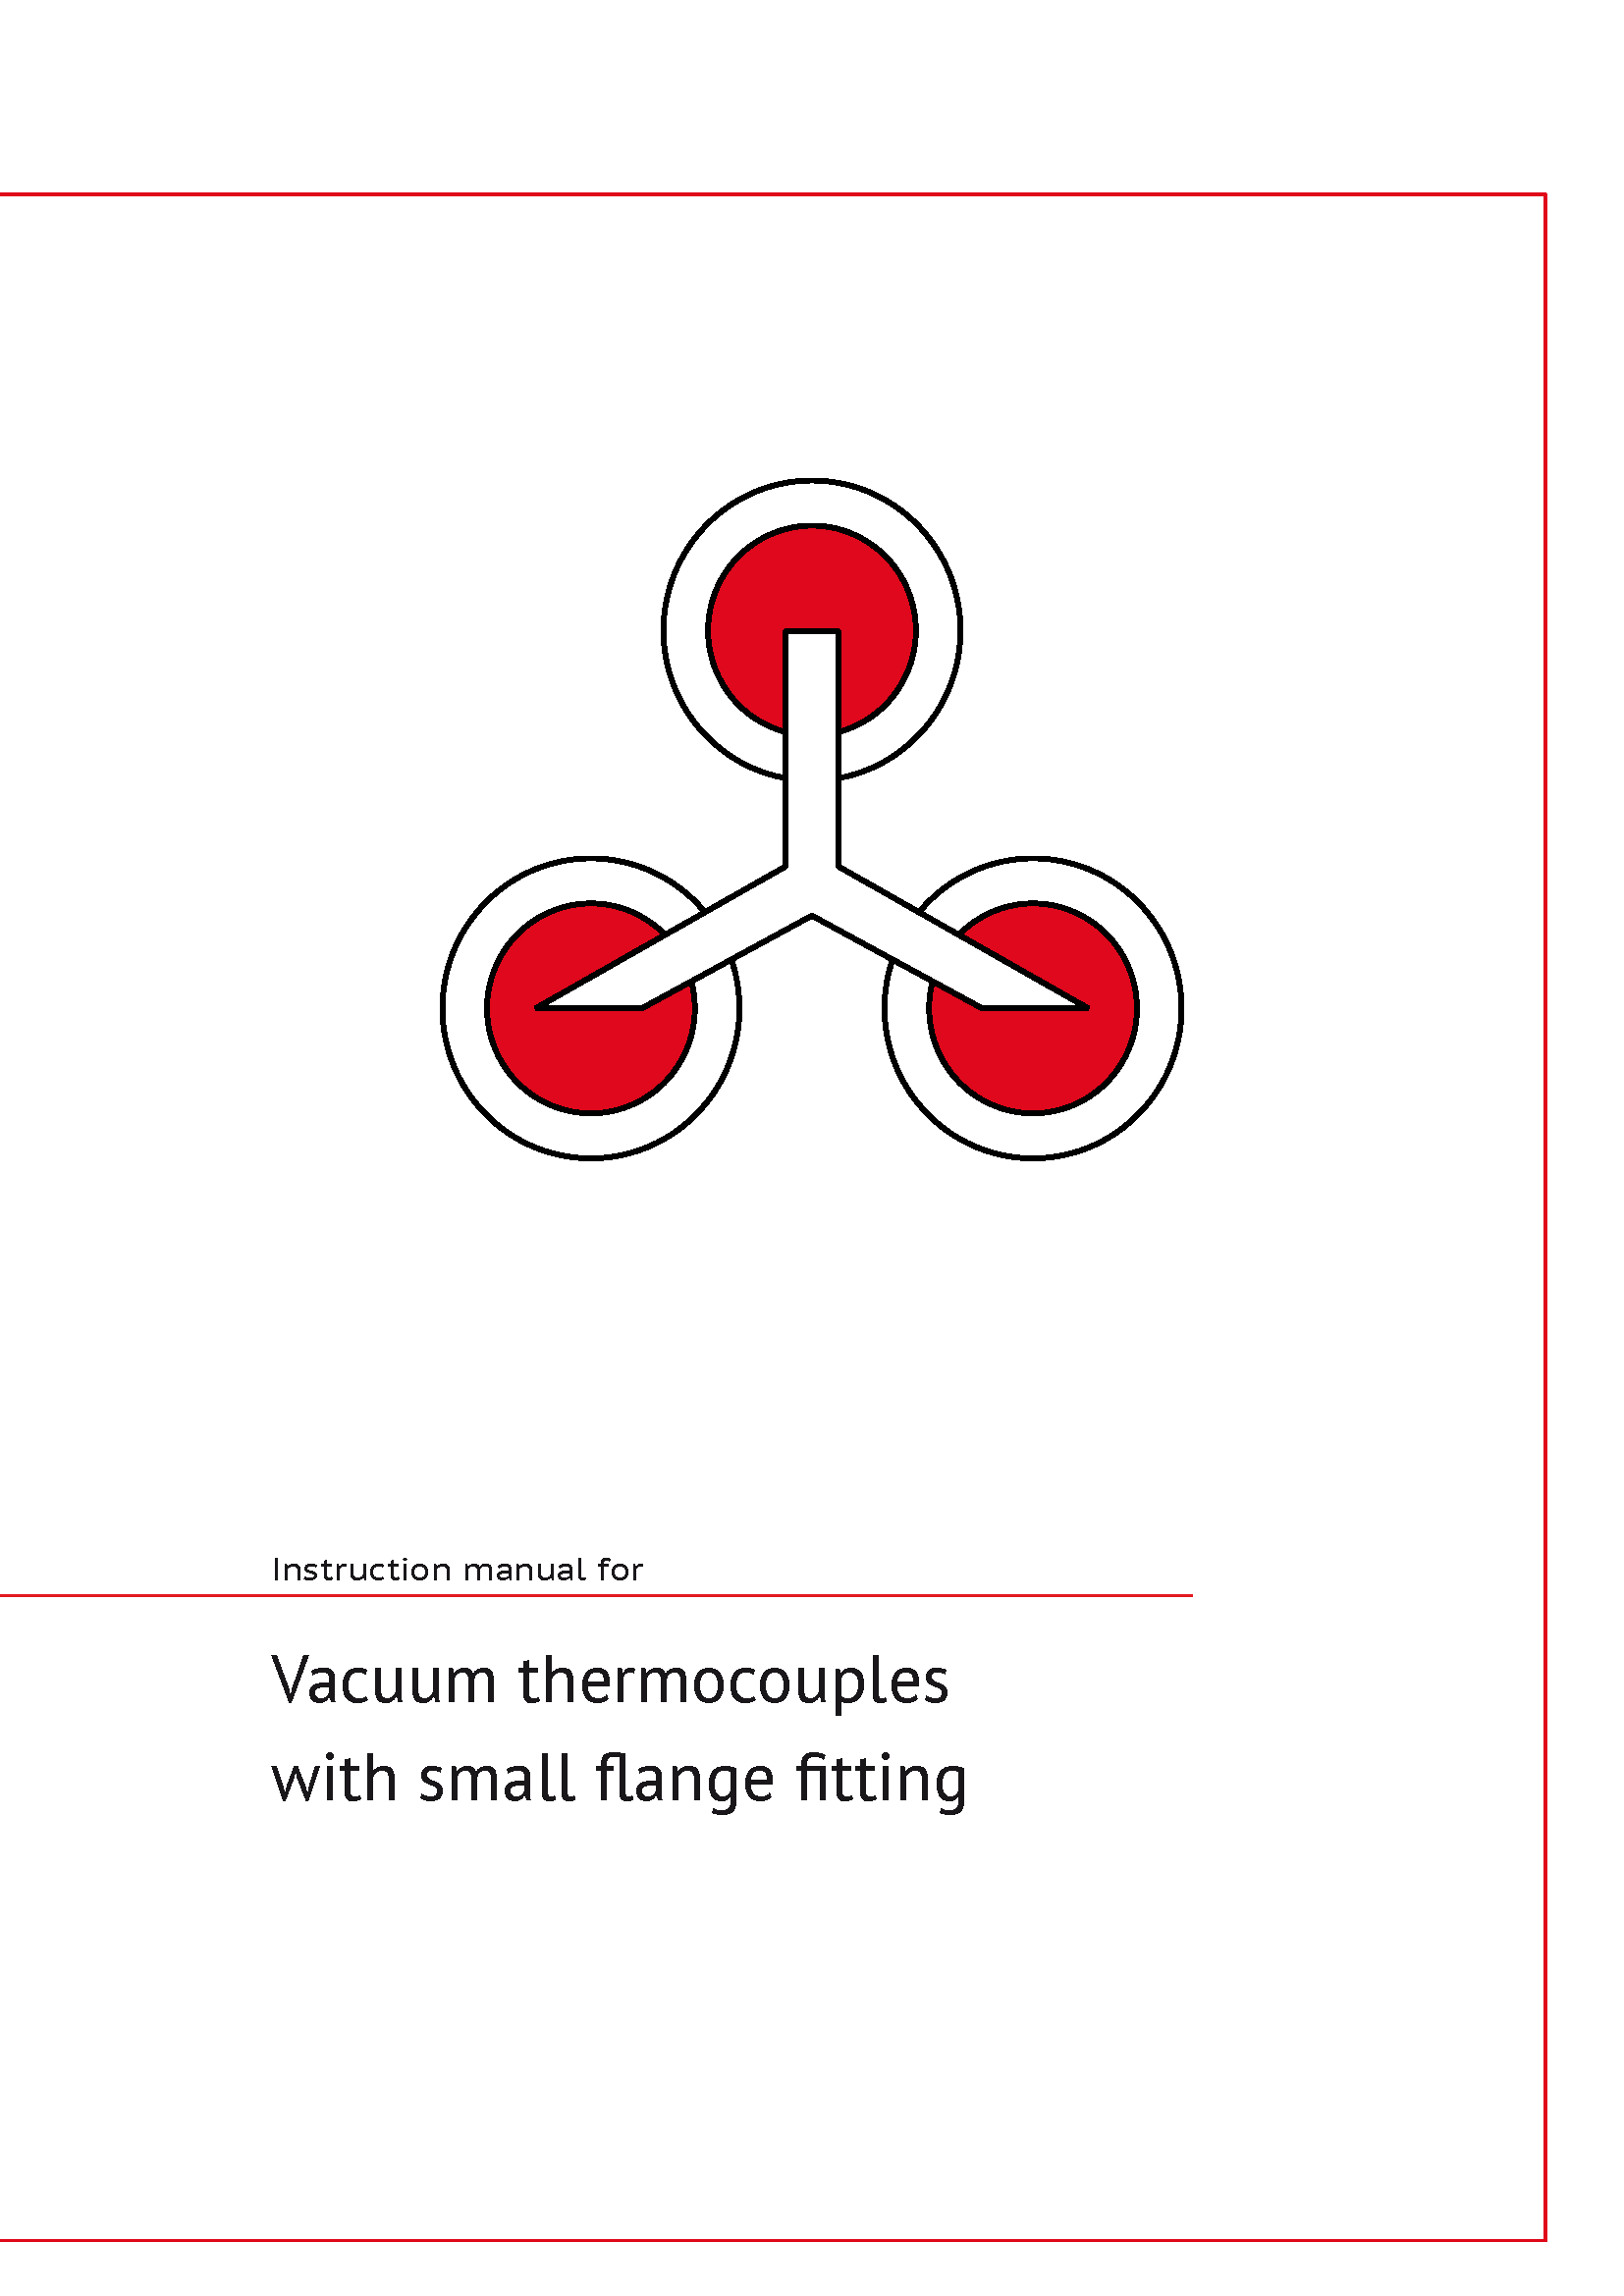 Manual for Vacuum-Thermocouples with small flange fitting